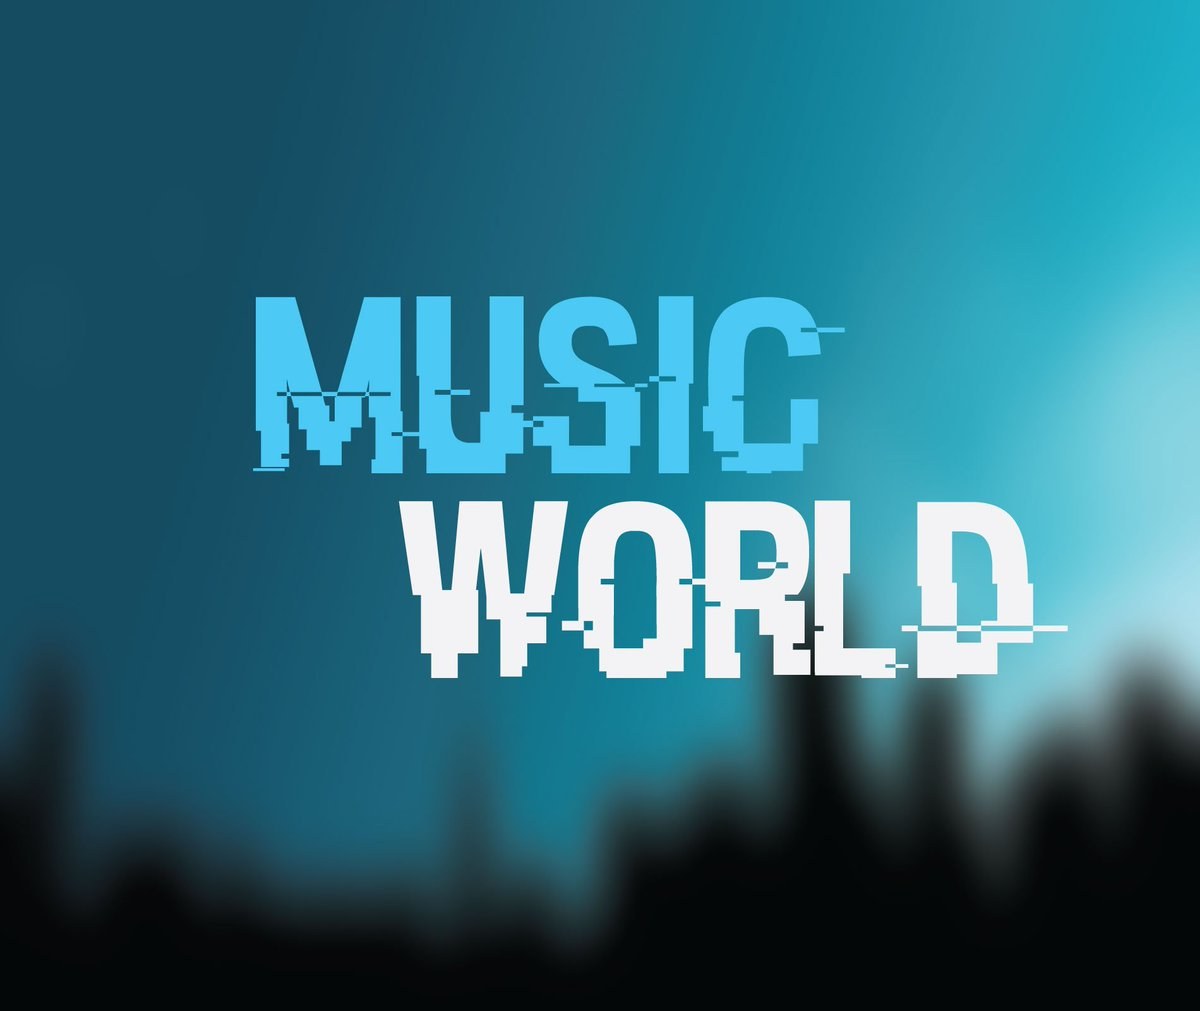 Music World On Twitter Welcome To My New Youtube Channel Here I Can Post Trending Music Video So Go Check Out Now Link In My Bio Music Trending Flollow Levavealike Songs